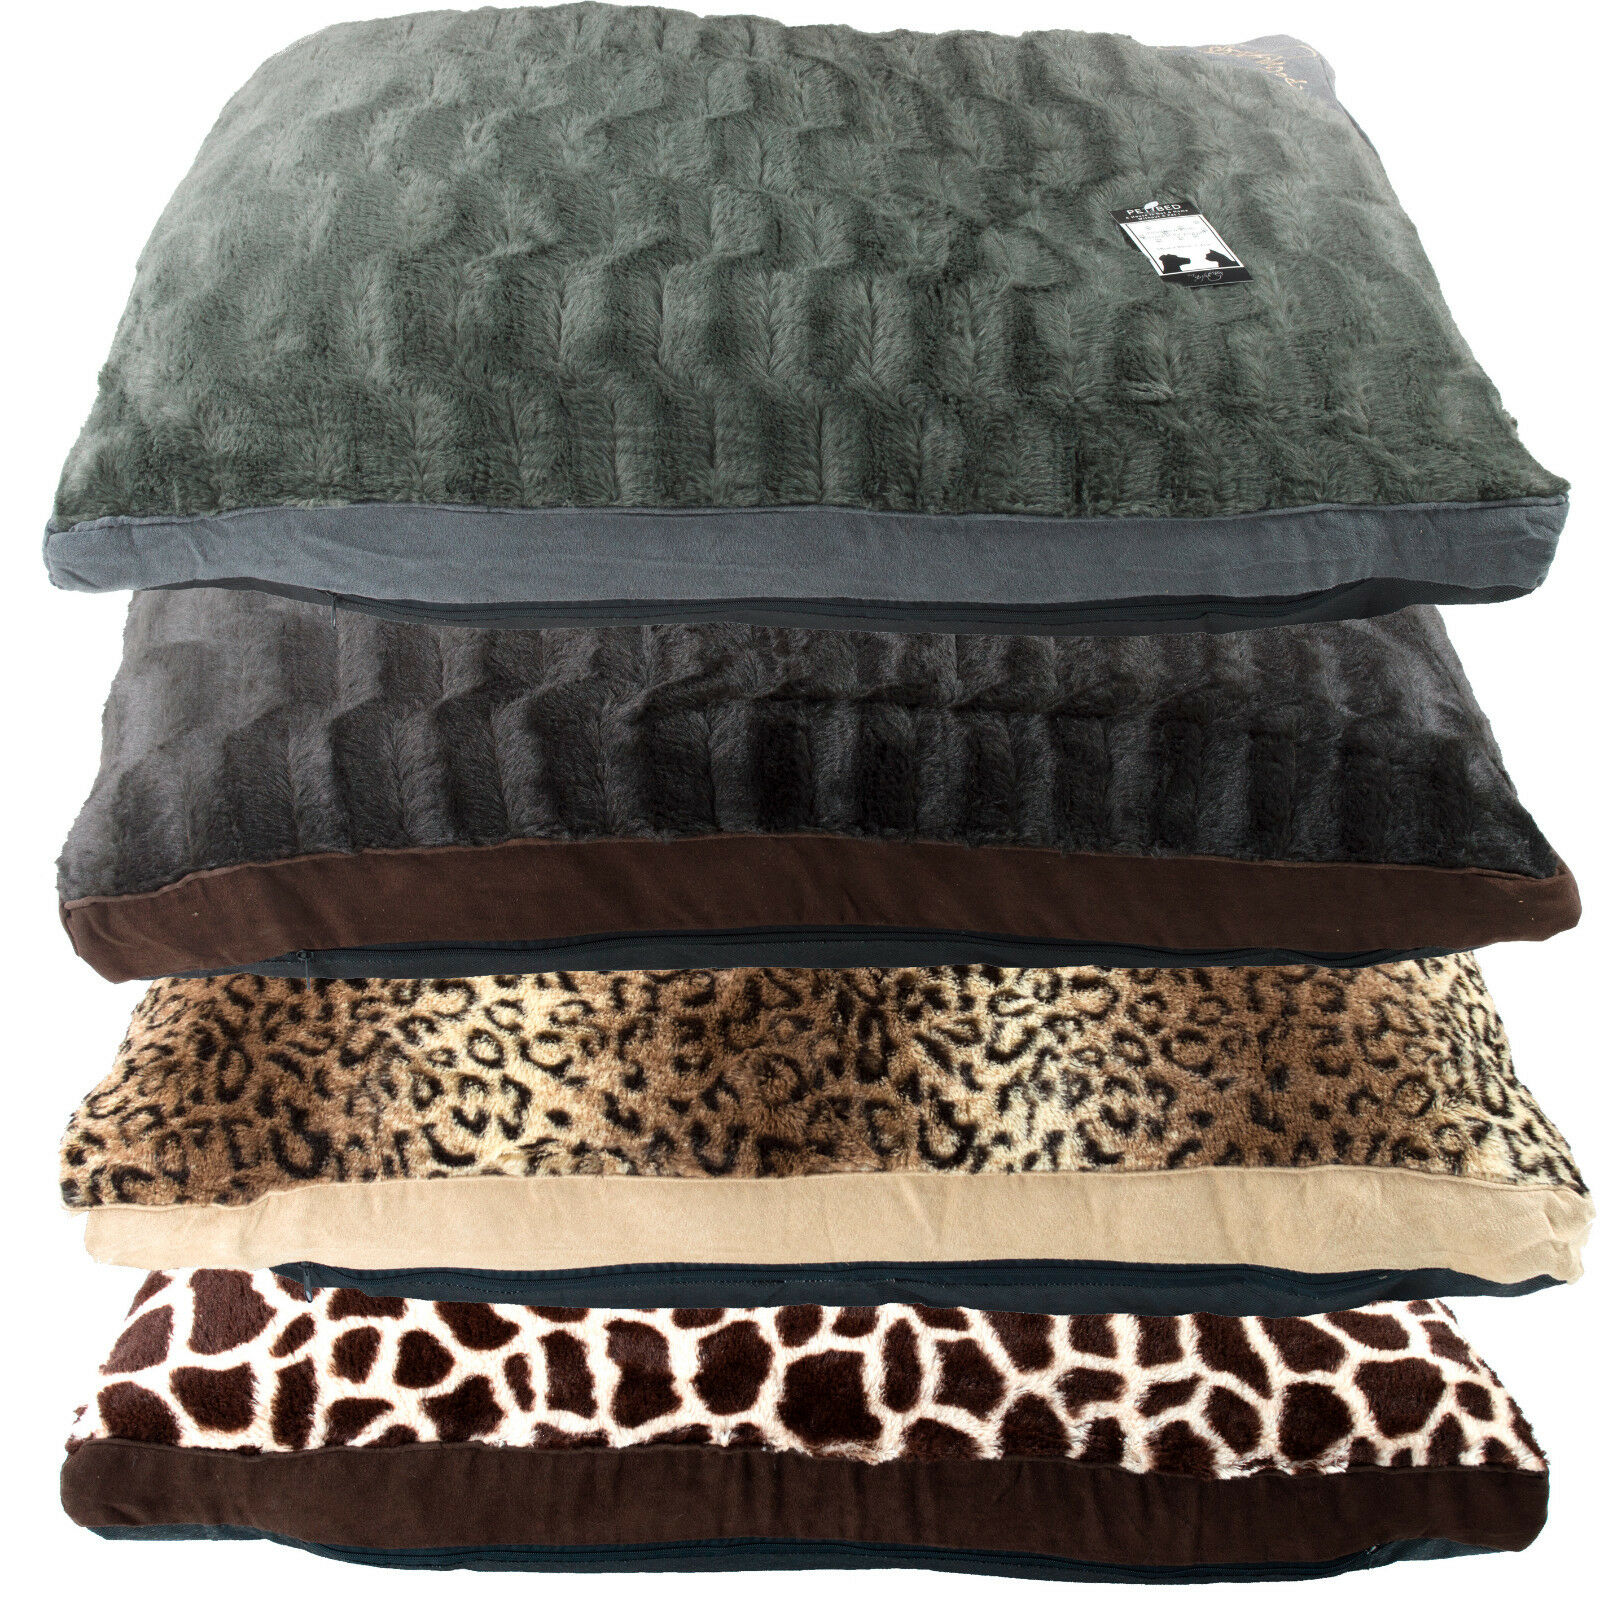 Medium or Extra Large Fur Pet Dog Bed - Washable Zipped Cover with Pillow